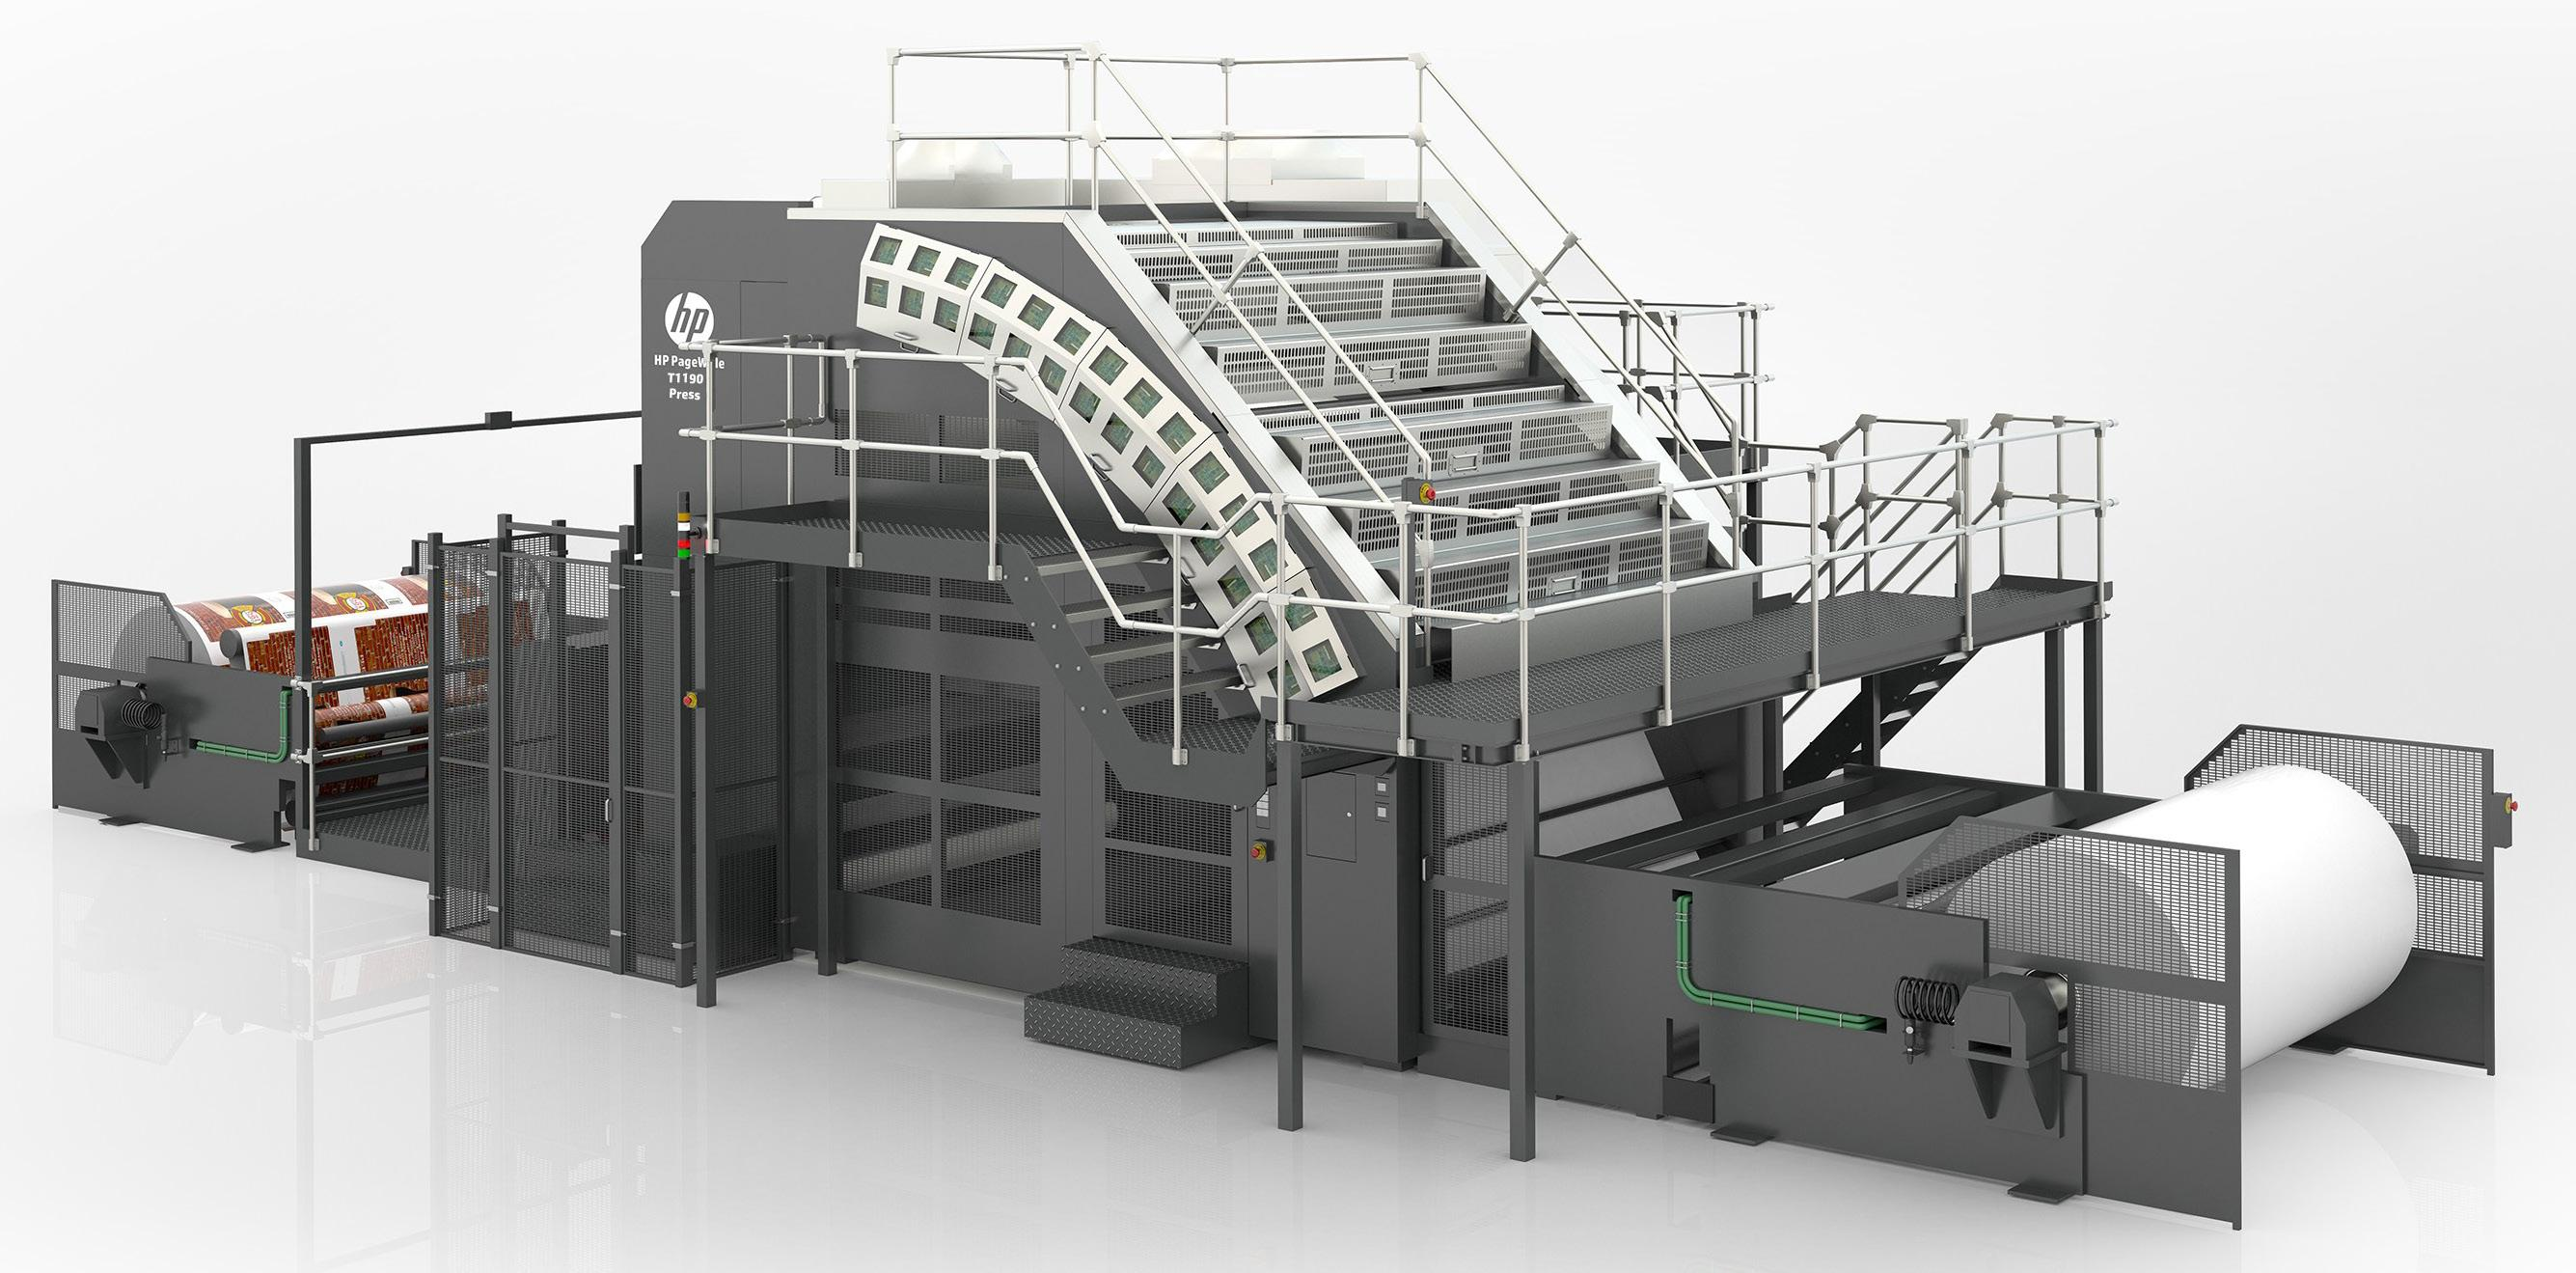 Page 6 of HP PageWide T1190 Press to Continue Disrupting Corrugated Production